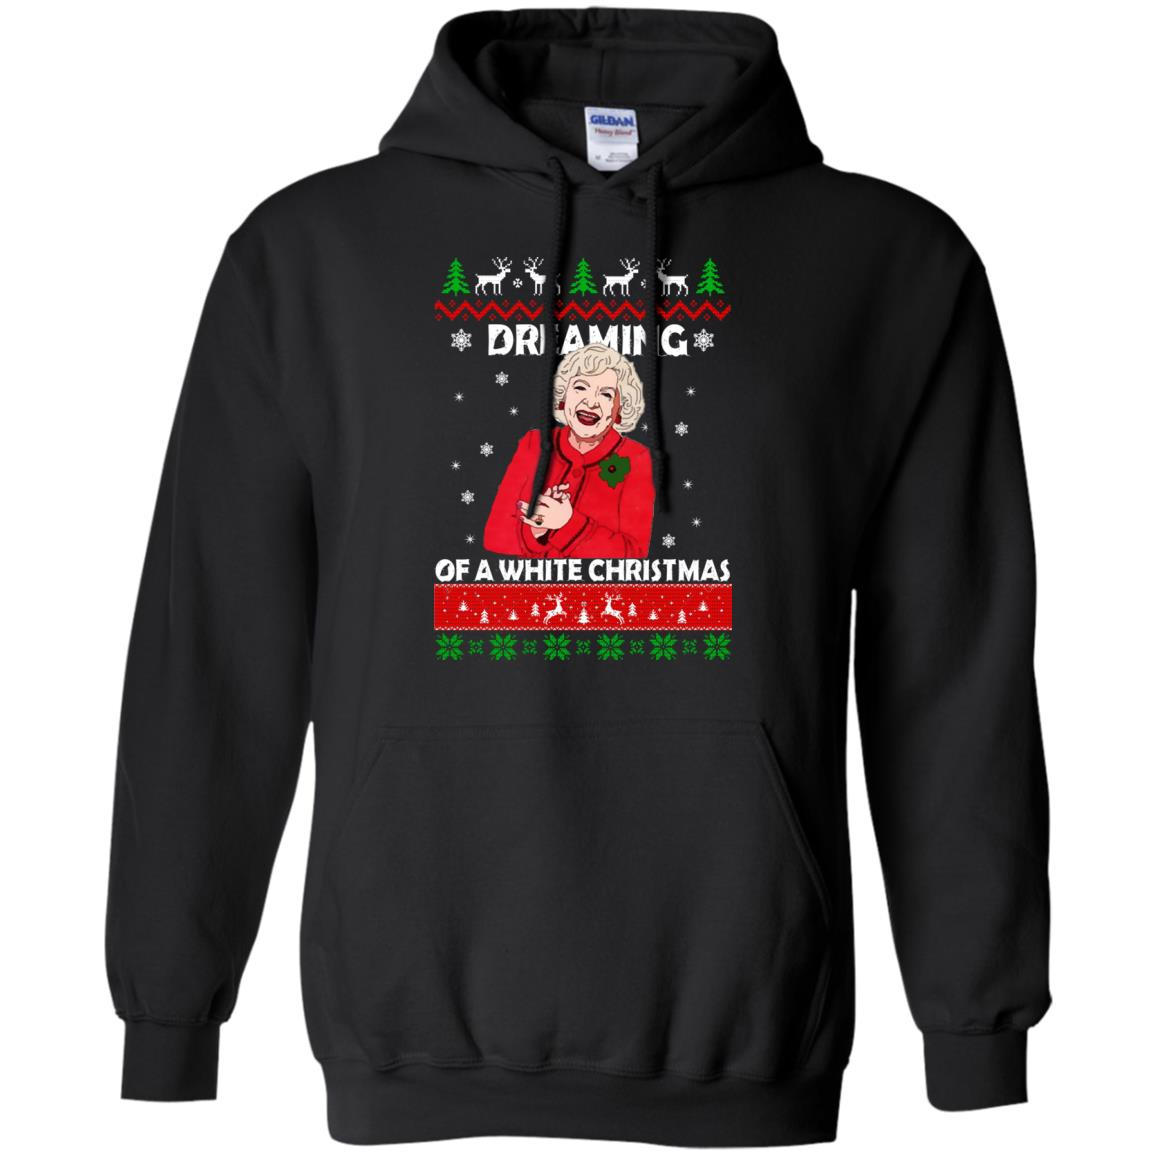 image 739 - Betty White: Dreaming of a White Christmas Sweater, Hoodie